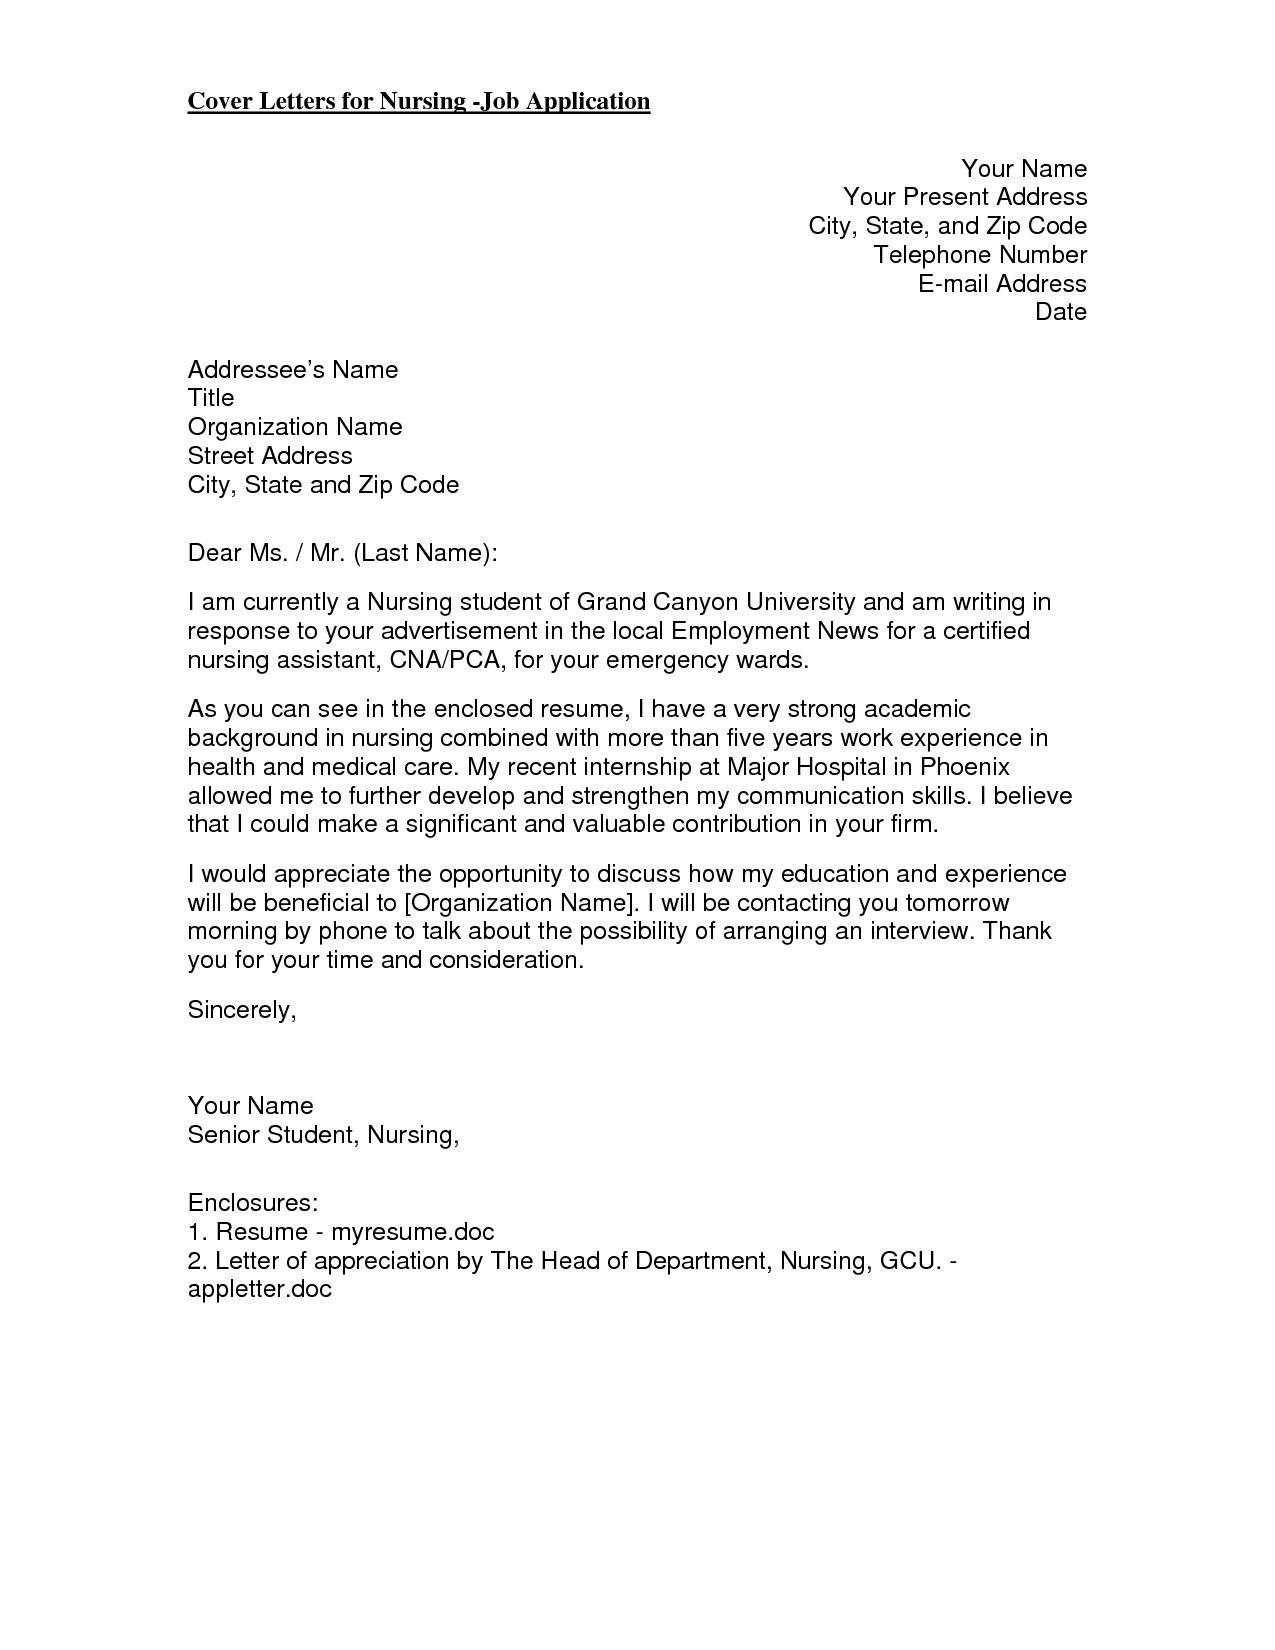 Cover Letter Template New Graduate